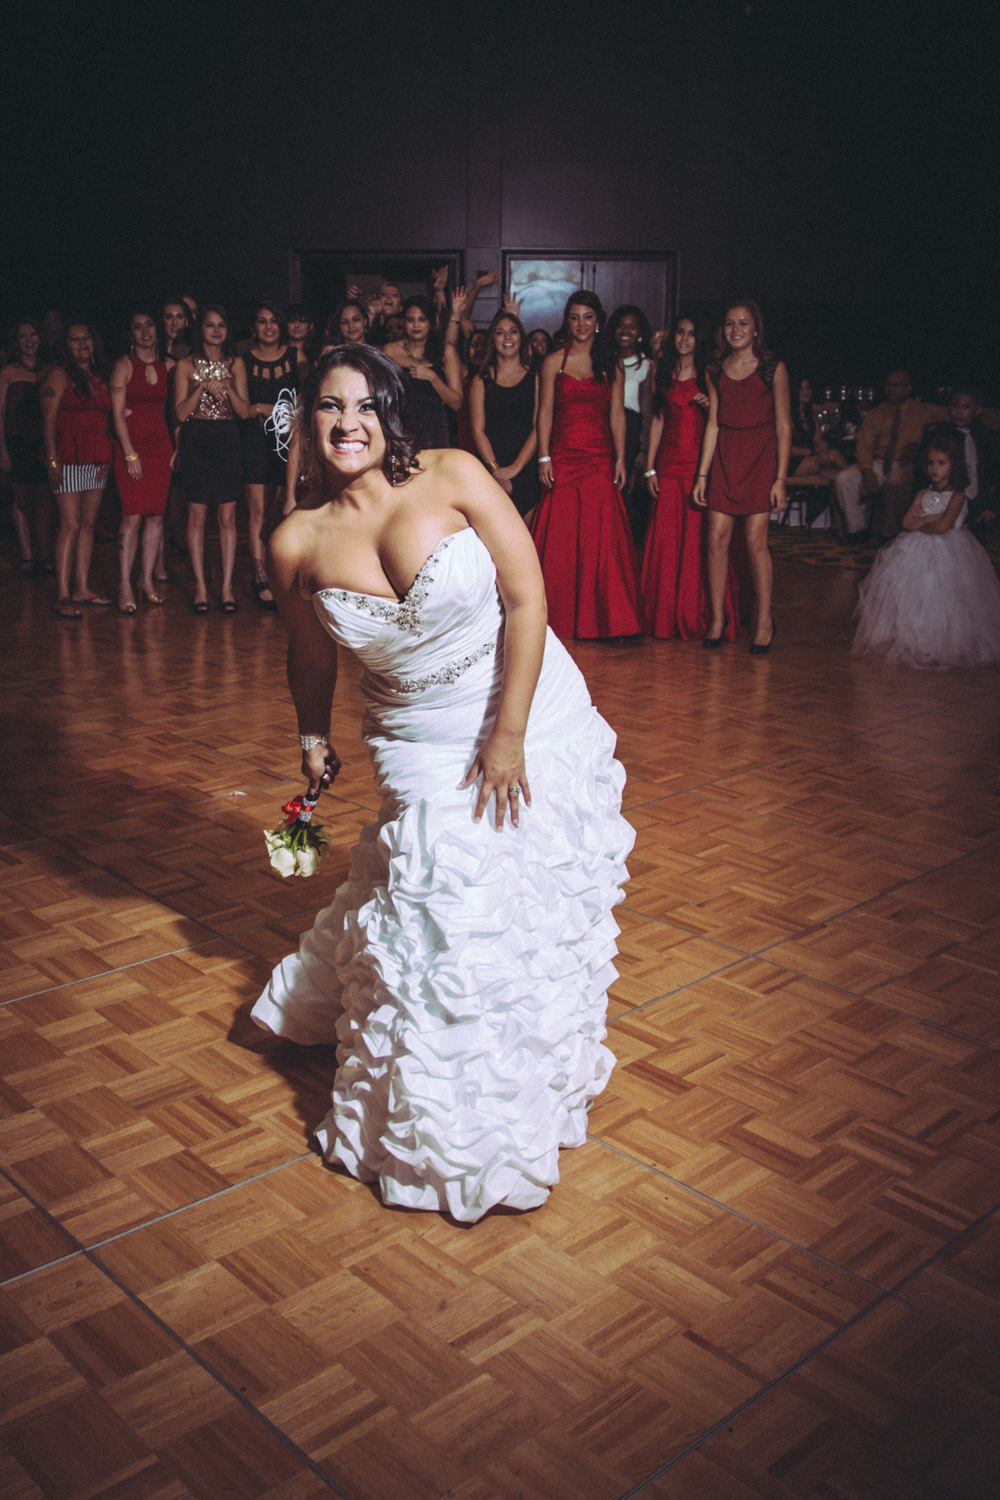 Orlando Wedding-Brazen Photo-Lopez-31.jpg